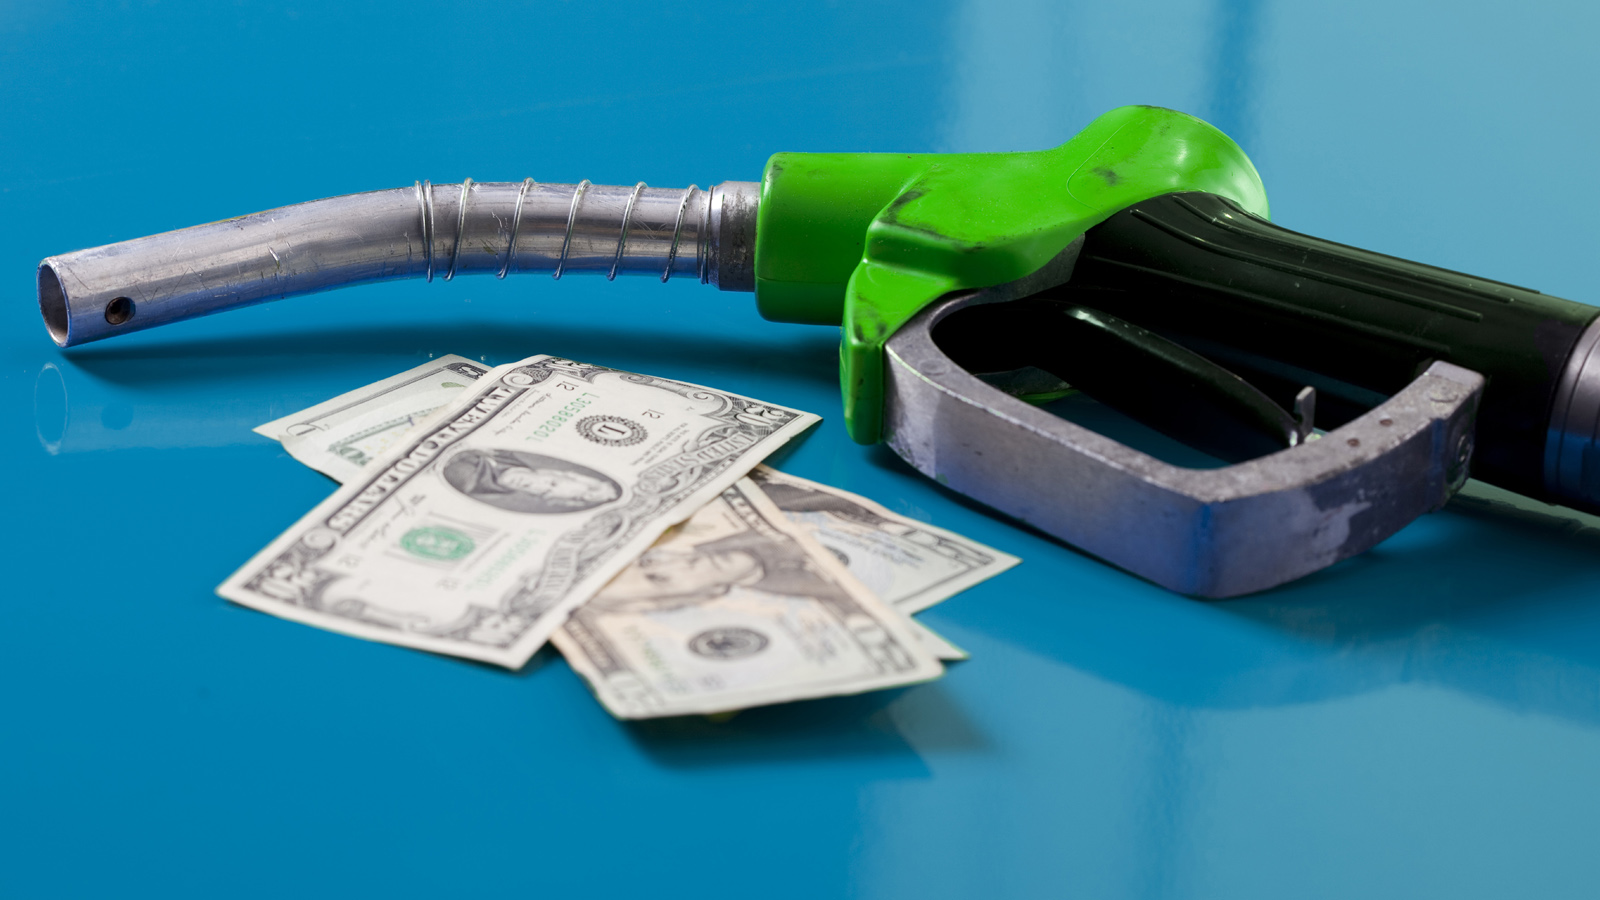 gas nozzle and dollar bills